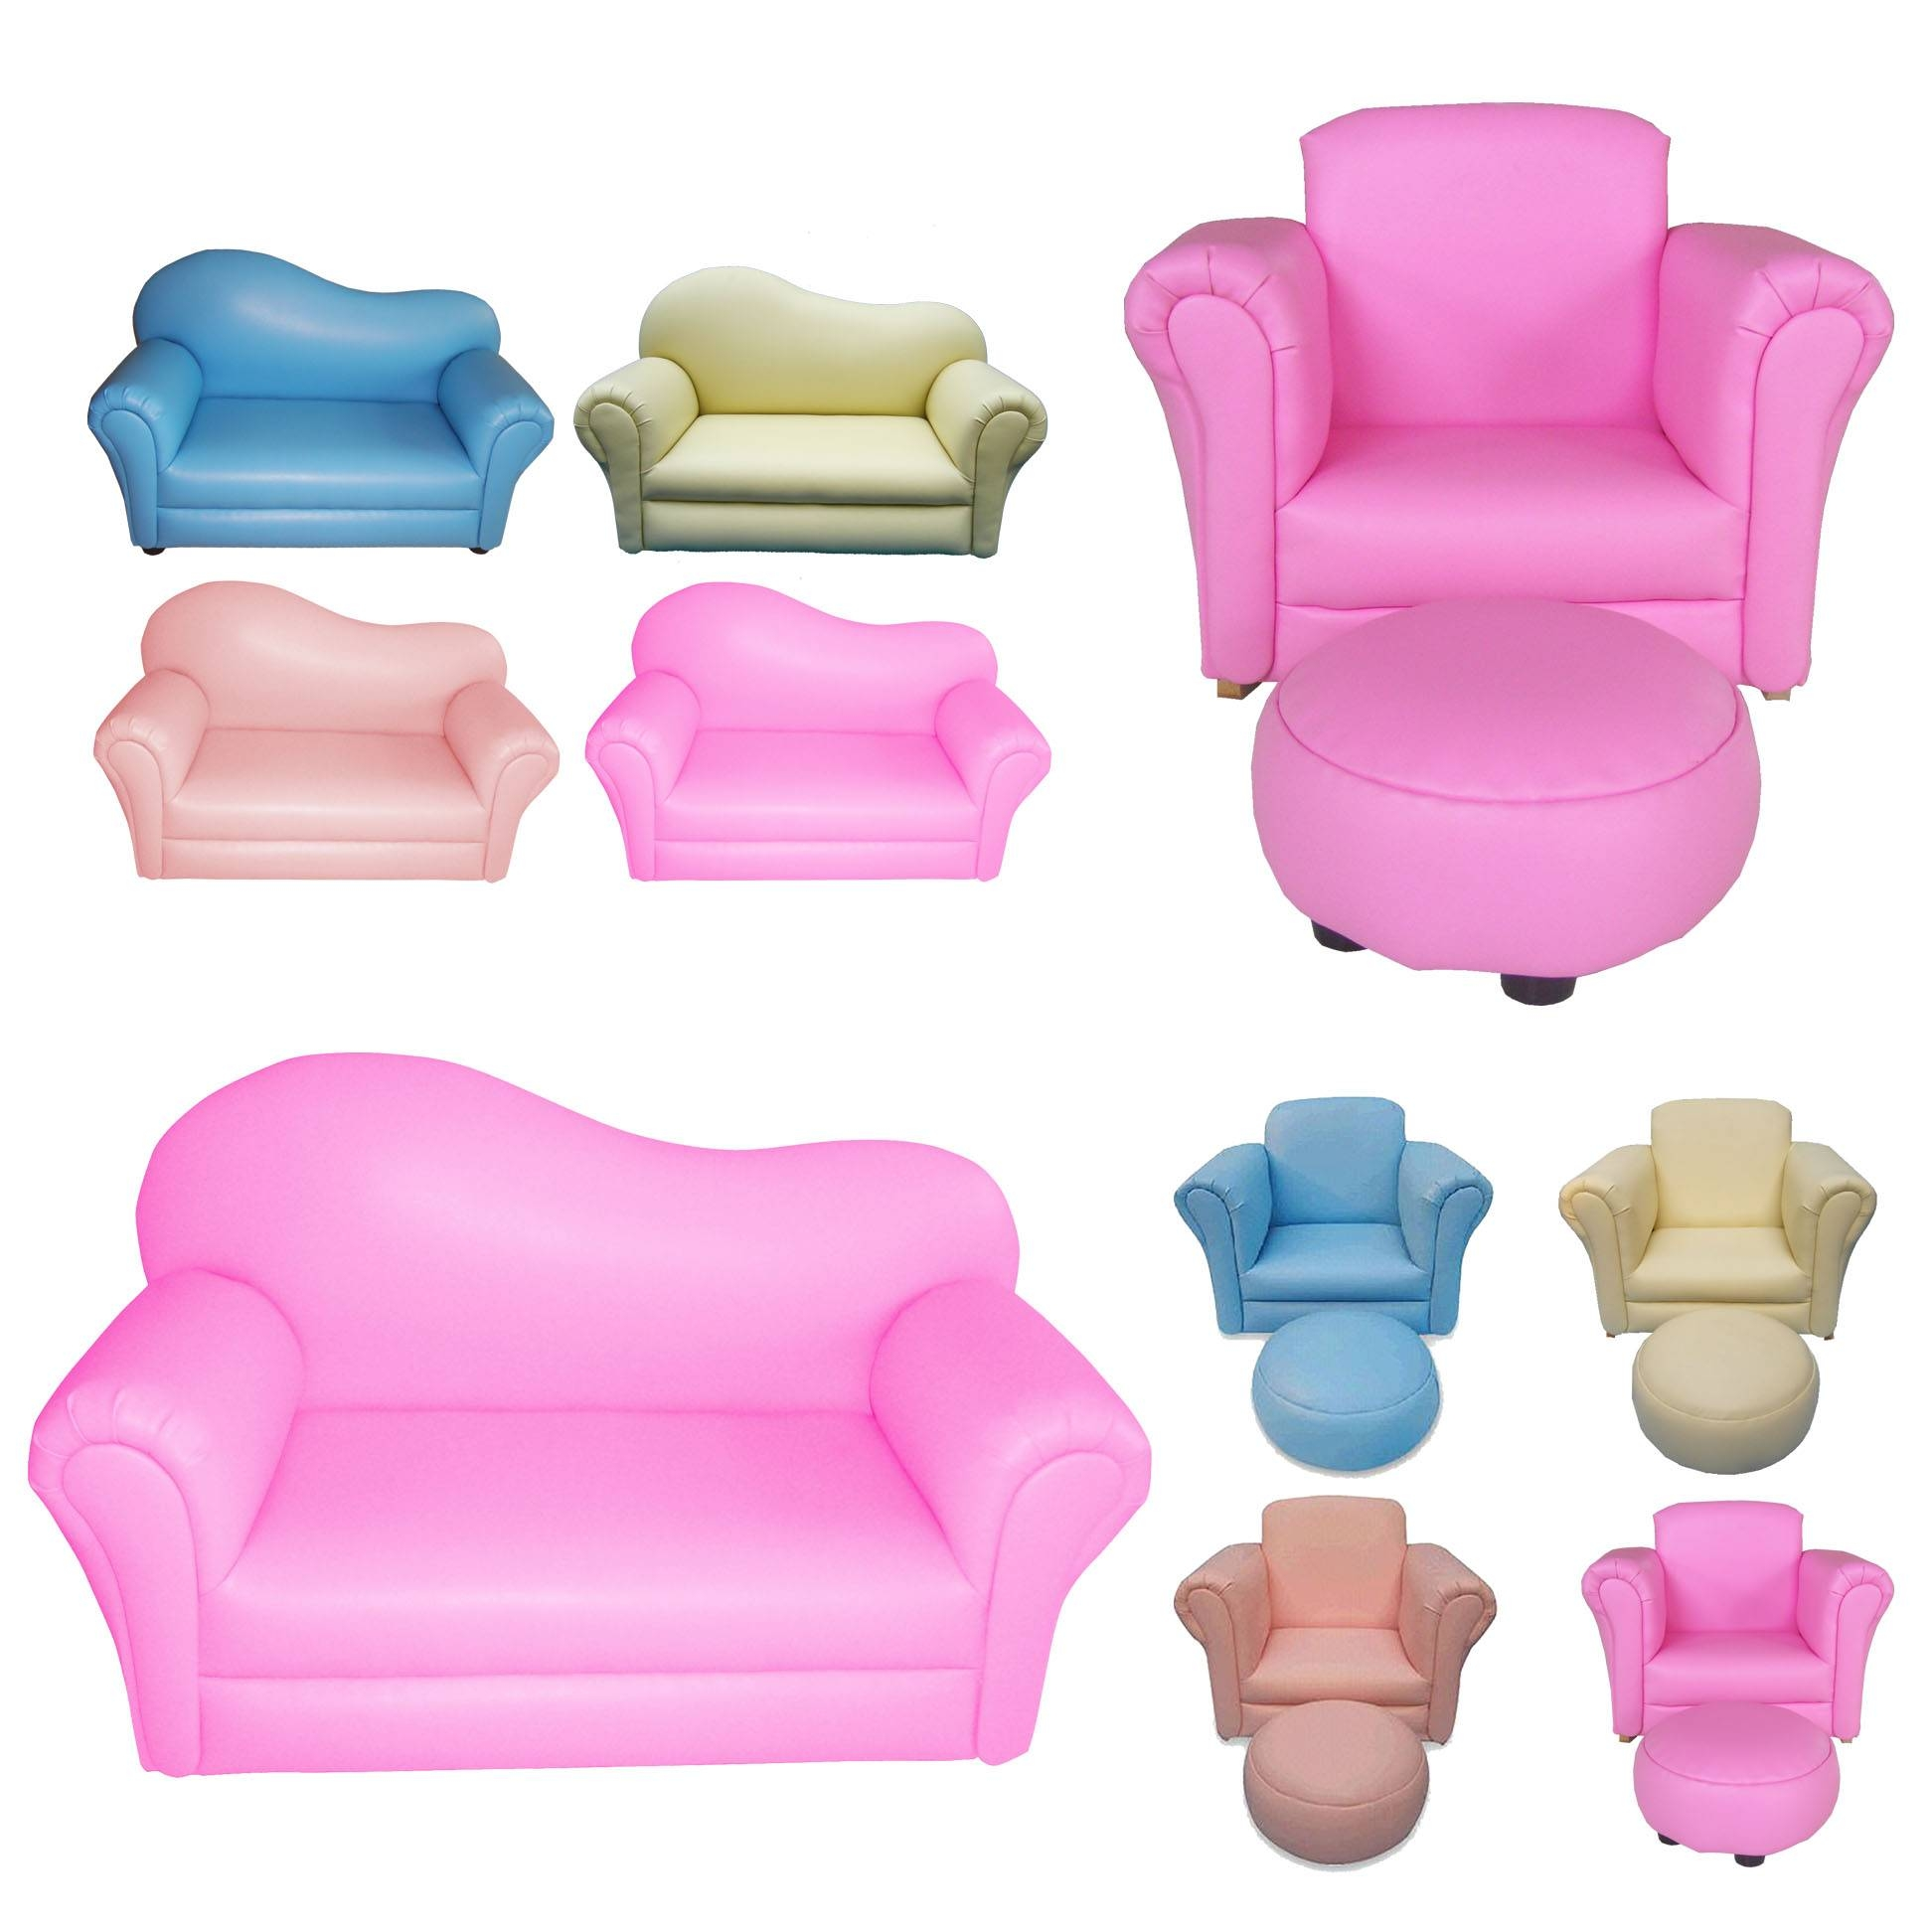 Sofa Chairs For Toddlers | Tehranmix Decoration with Toddler Sofa Chairs (Image 10 of 15)